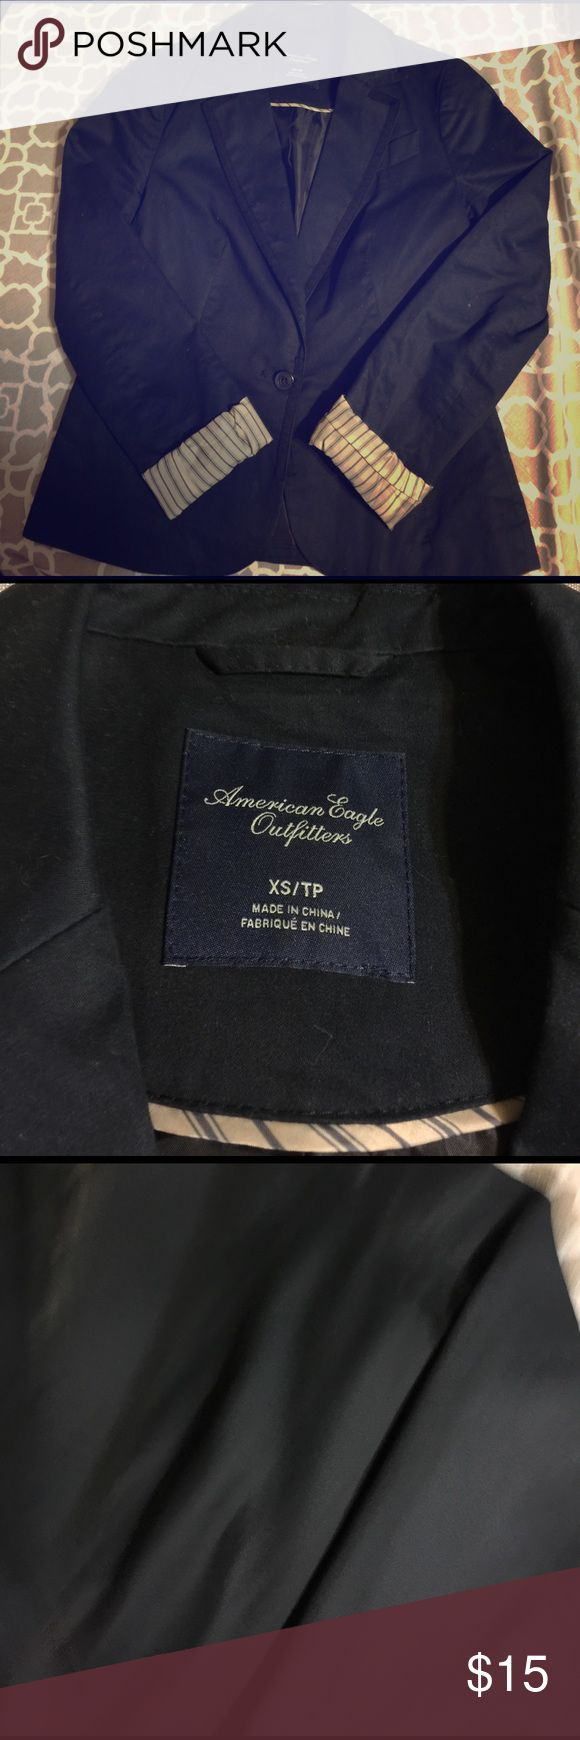 American Eagle outfitter navy blazer w/black trim Blazer is your first black really versatile. Only worn a couple of times. In great condition. Shell is 100% cotton lining 100% polyester American Eagle Outfitters Jackets & Coats Blazers